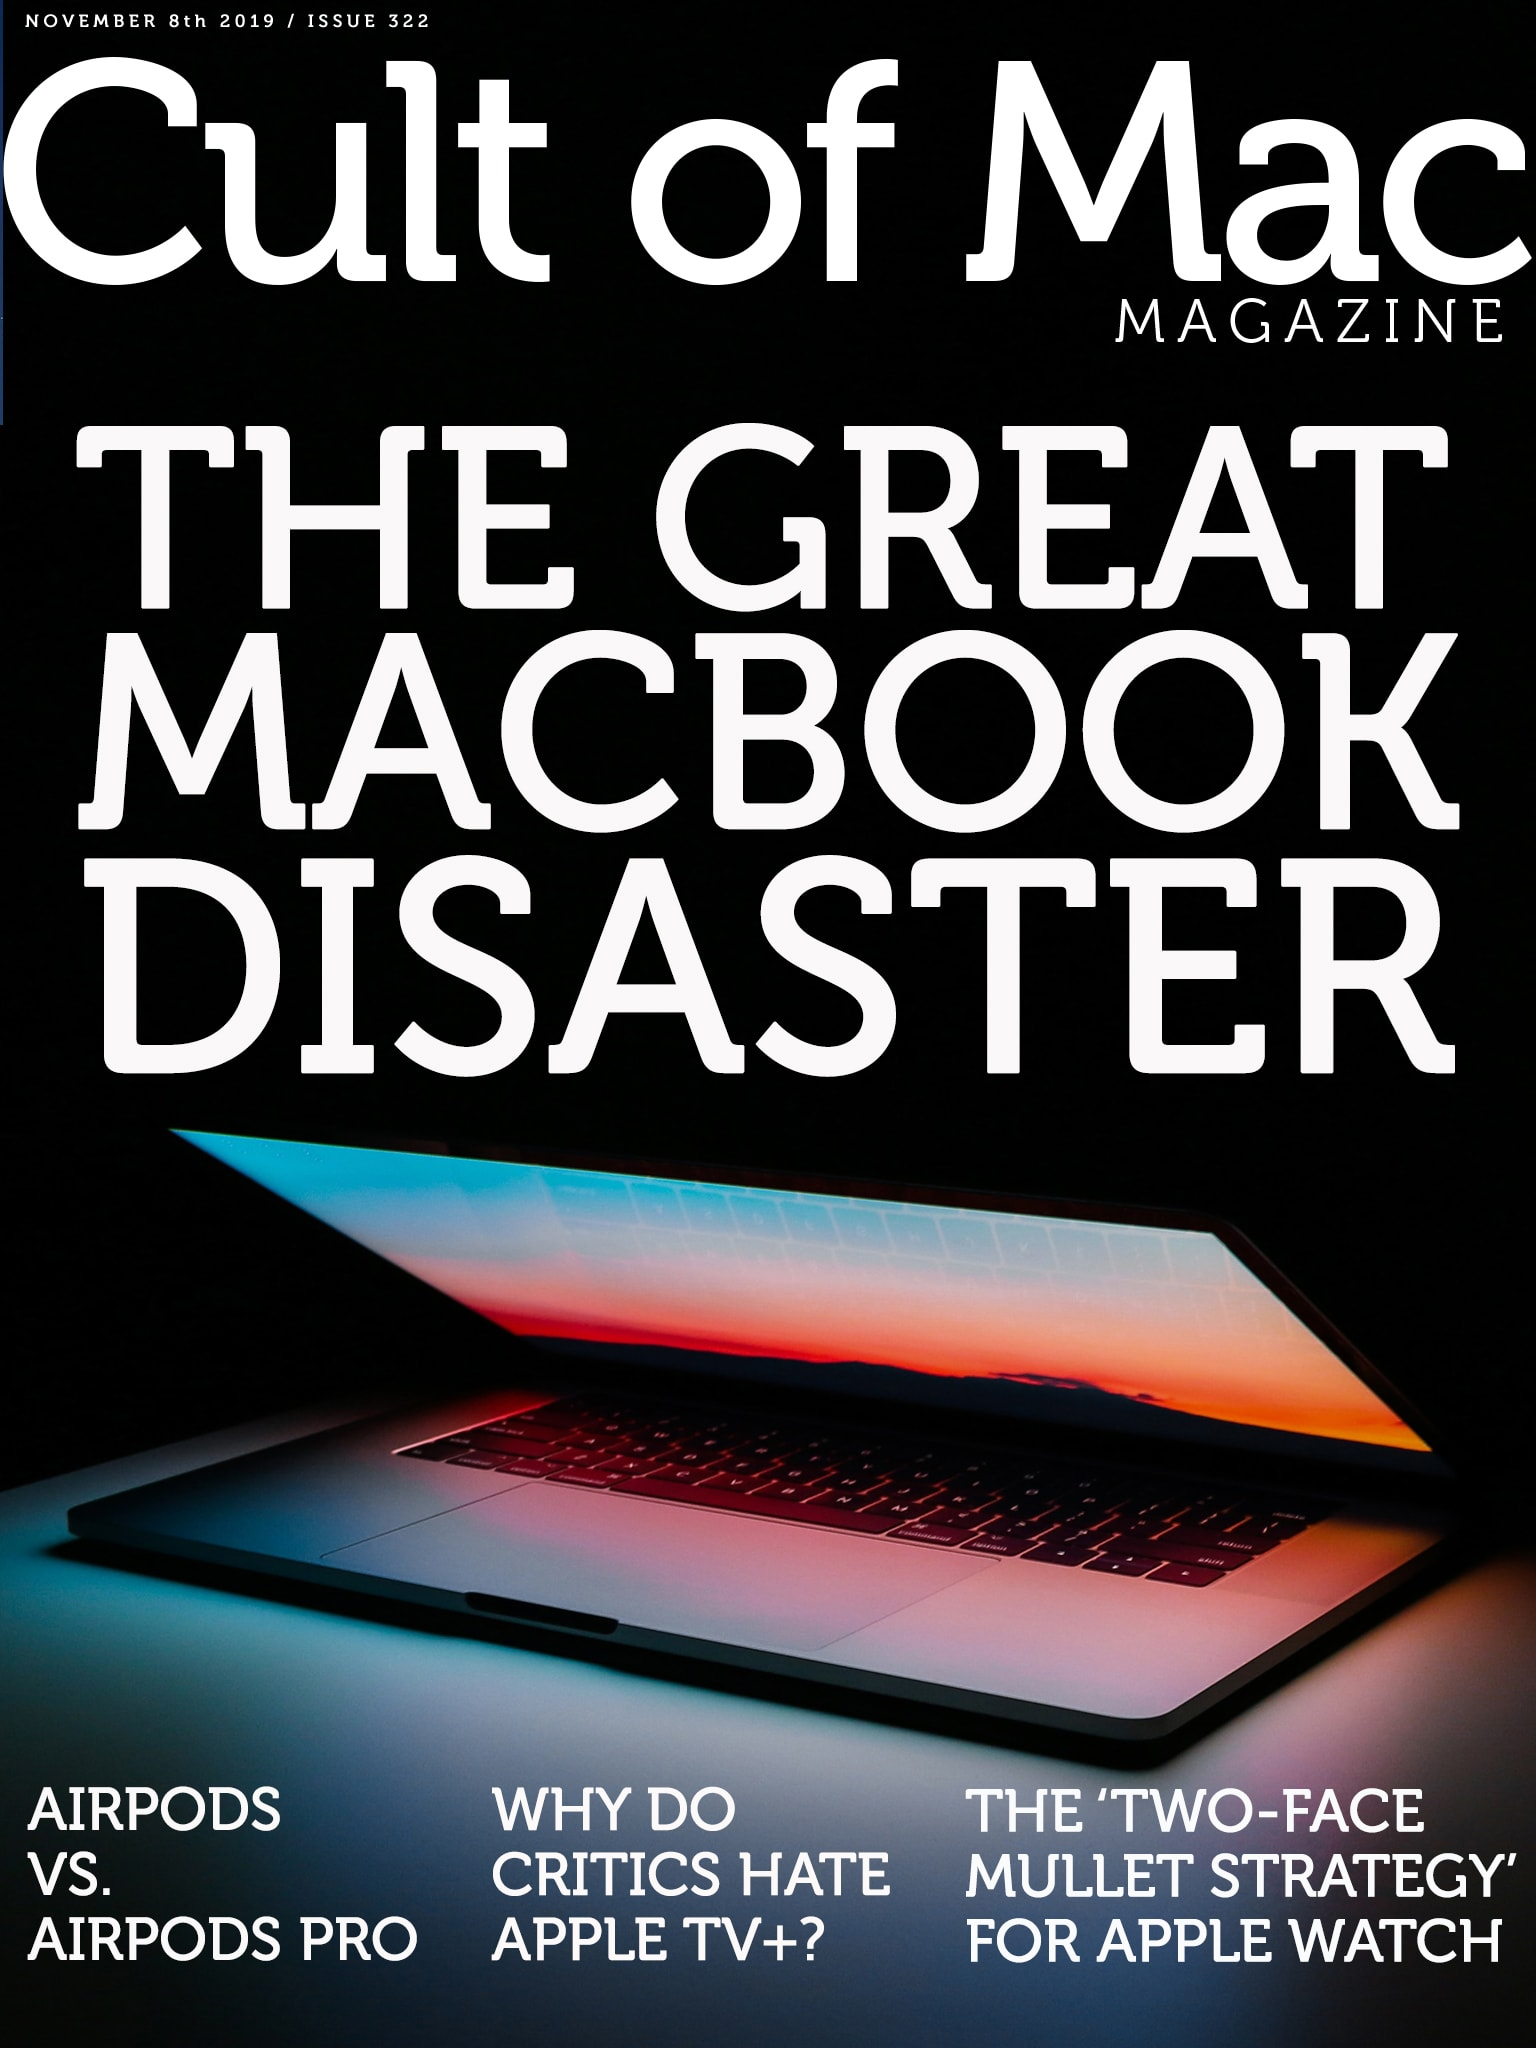 MacBook disaster: Can Cupertino fix this sorry state of affairs?